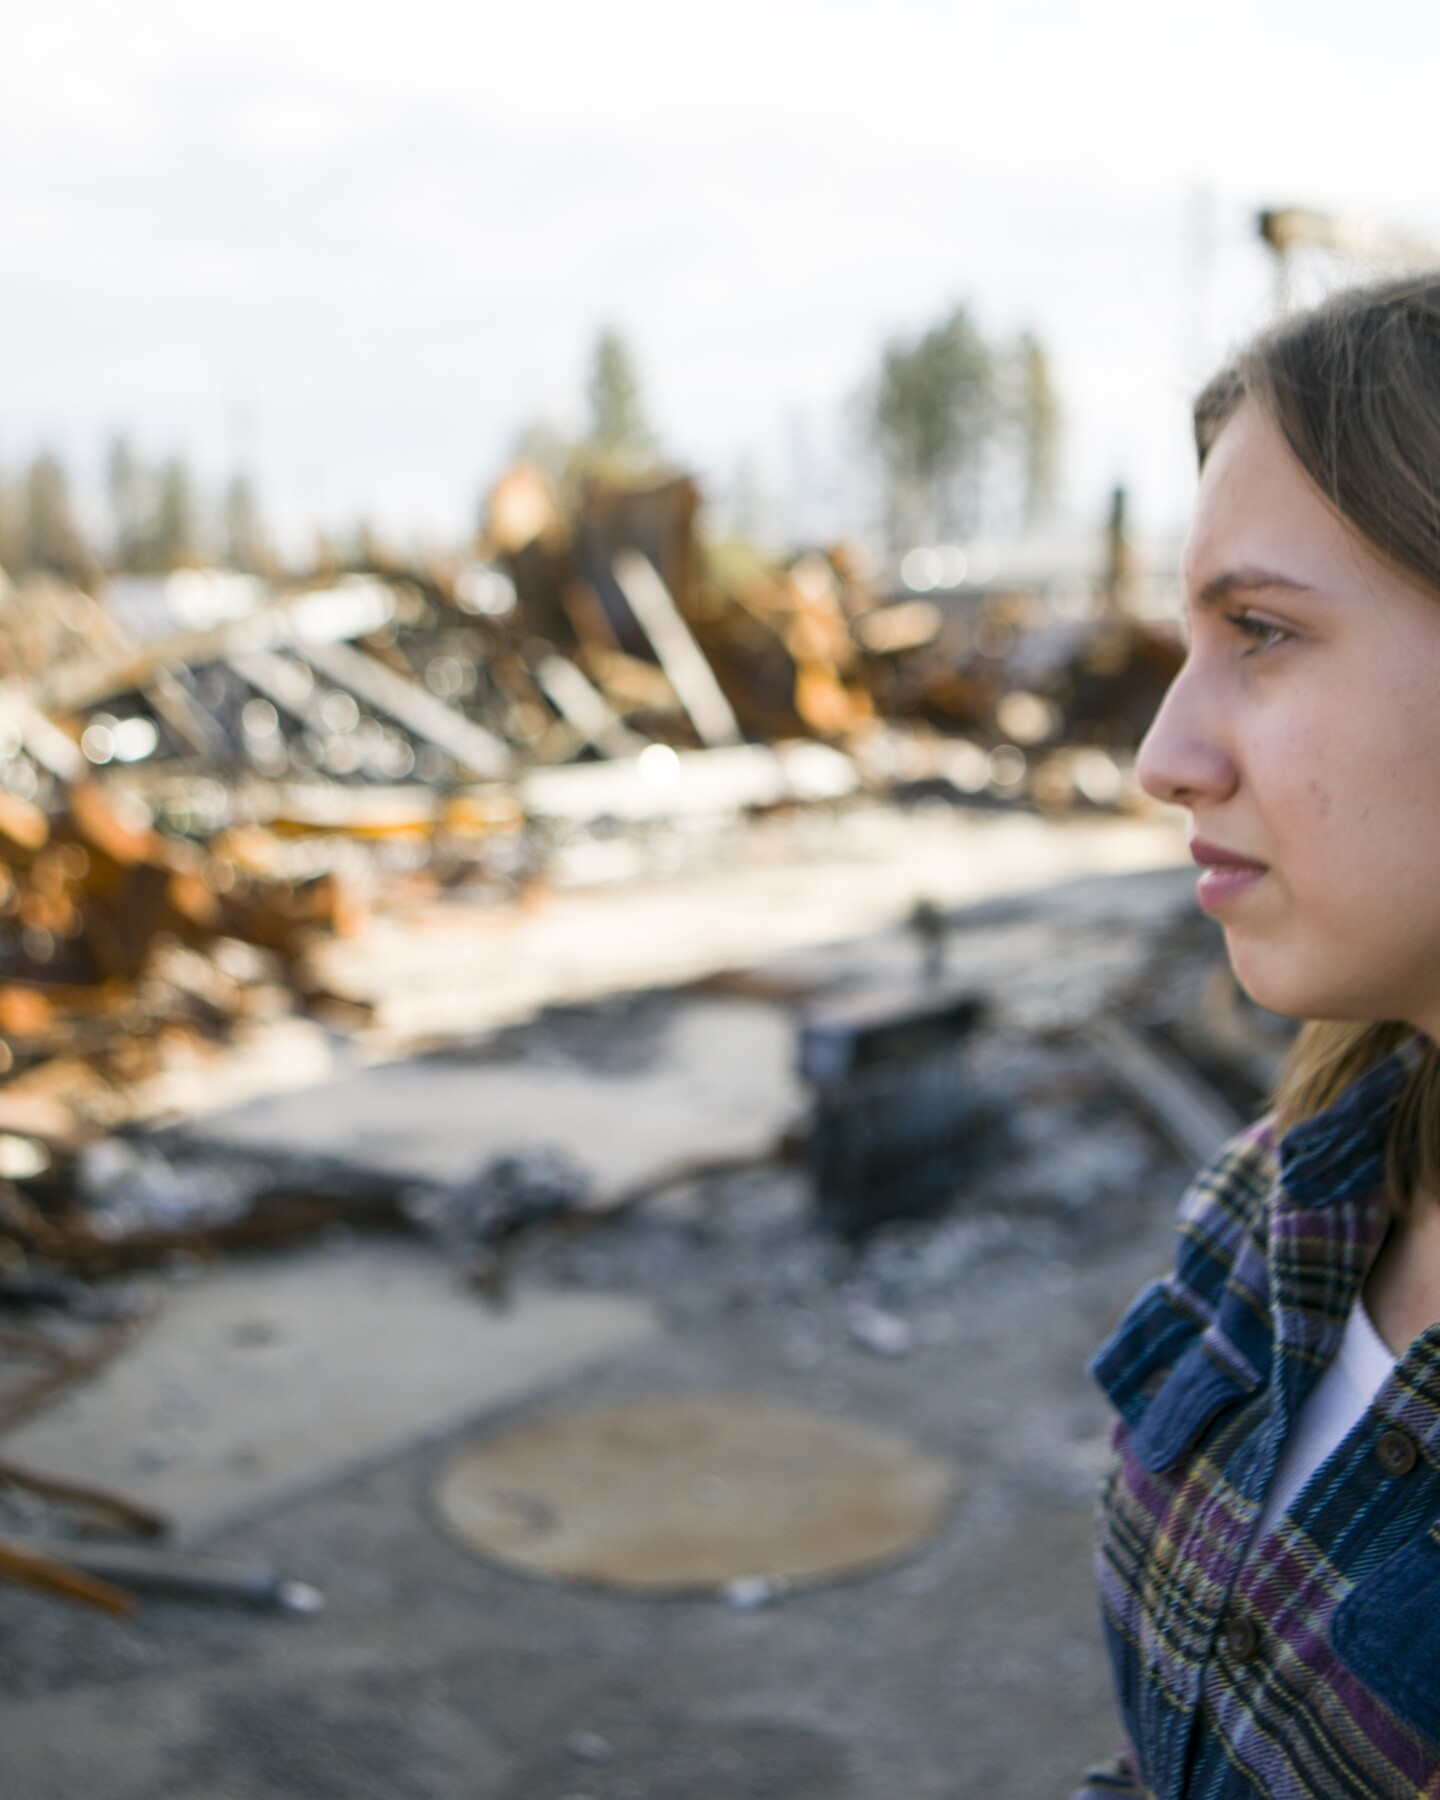 """EARTH FOCUS """"The Youth Climate Movement Around the World"""" features Alexandria Villaseñor from Paradise, California. Image courtesy of Thomson Reuters Foundation."""